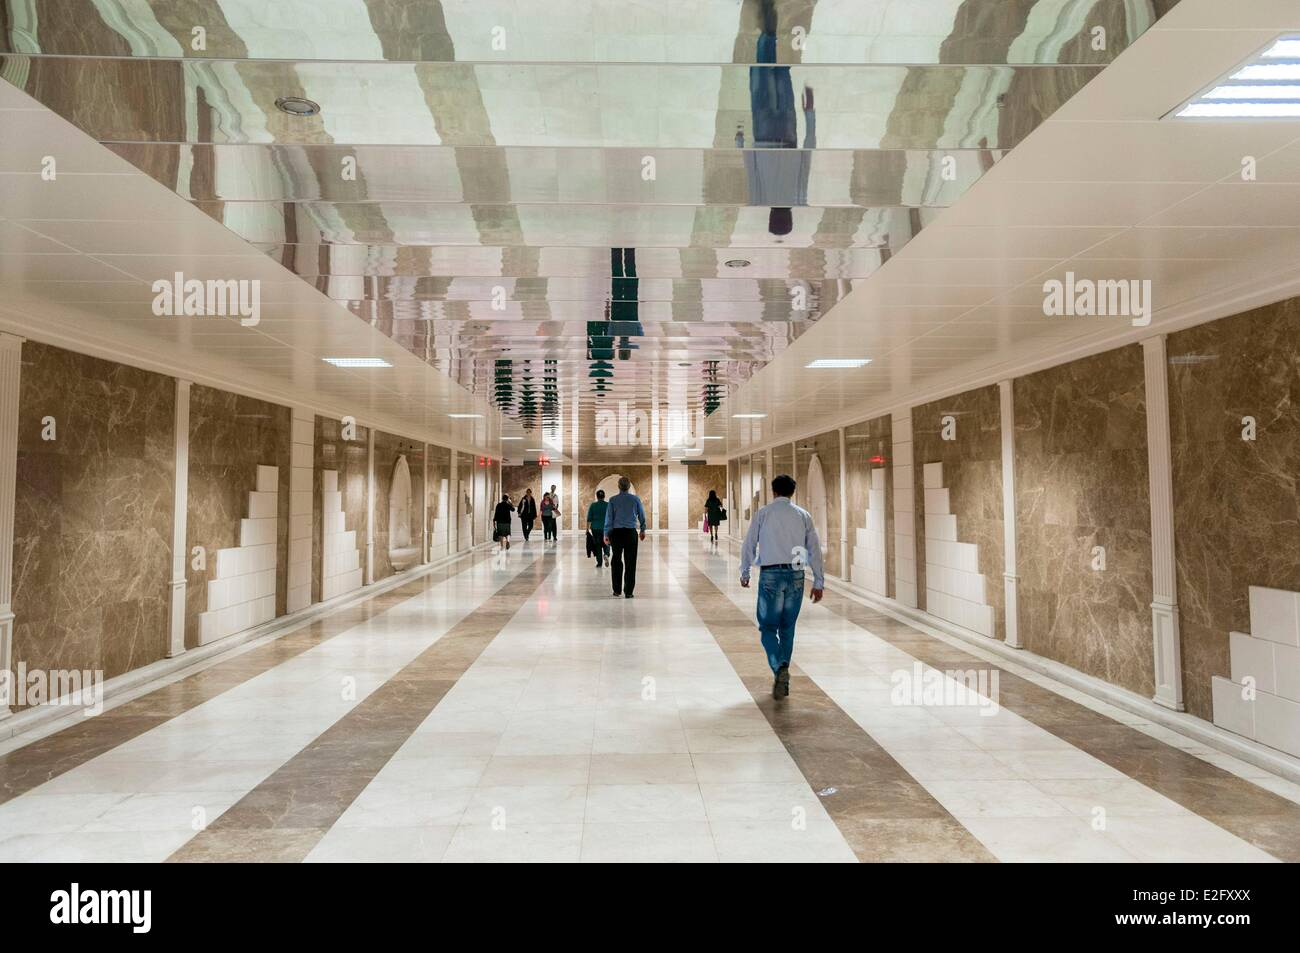 Azerbaijan Baku underground tunnel under the Neftciler Prospekt avenue also called Bulvar - Stock Image